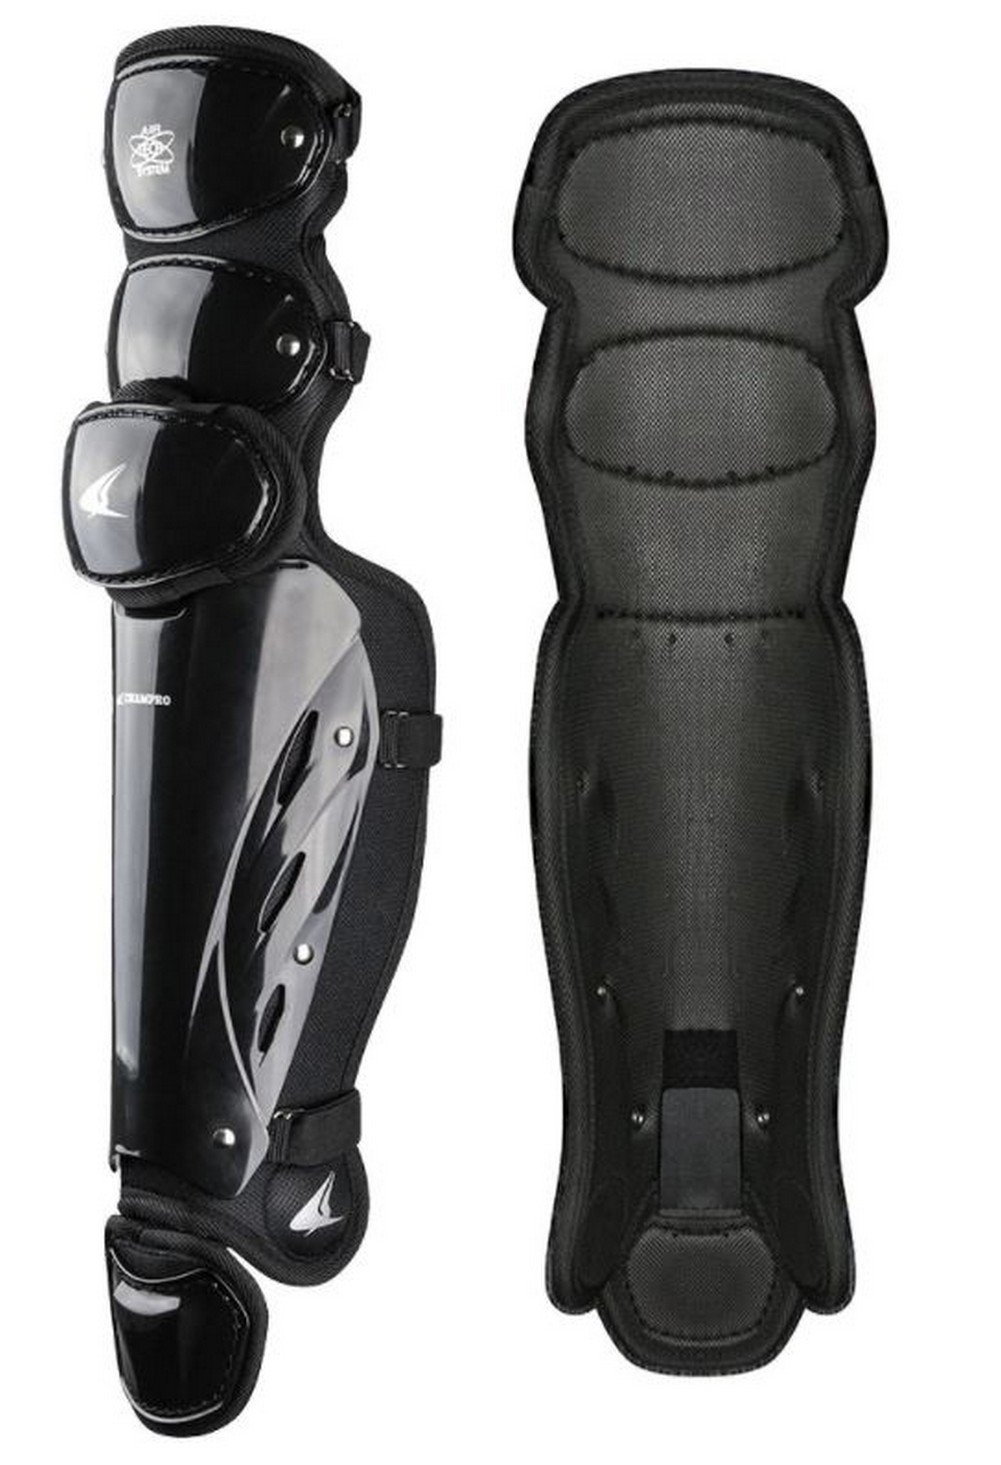 CHAMPRO Pro-Plus Umpire Leg Guard 15.5'' Baseball Softball Protection Black CG355 by CHAMPRO